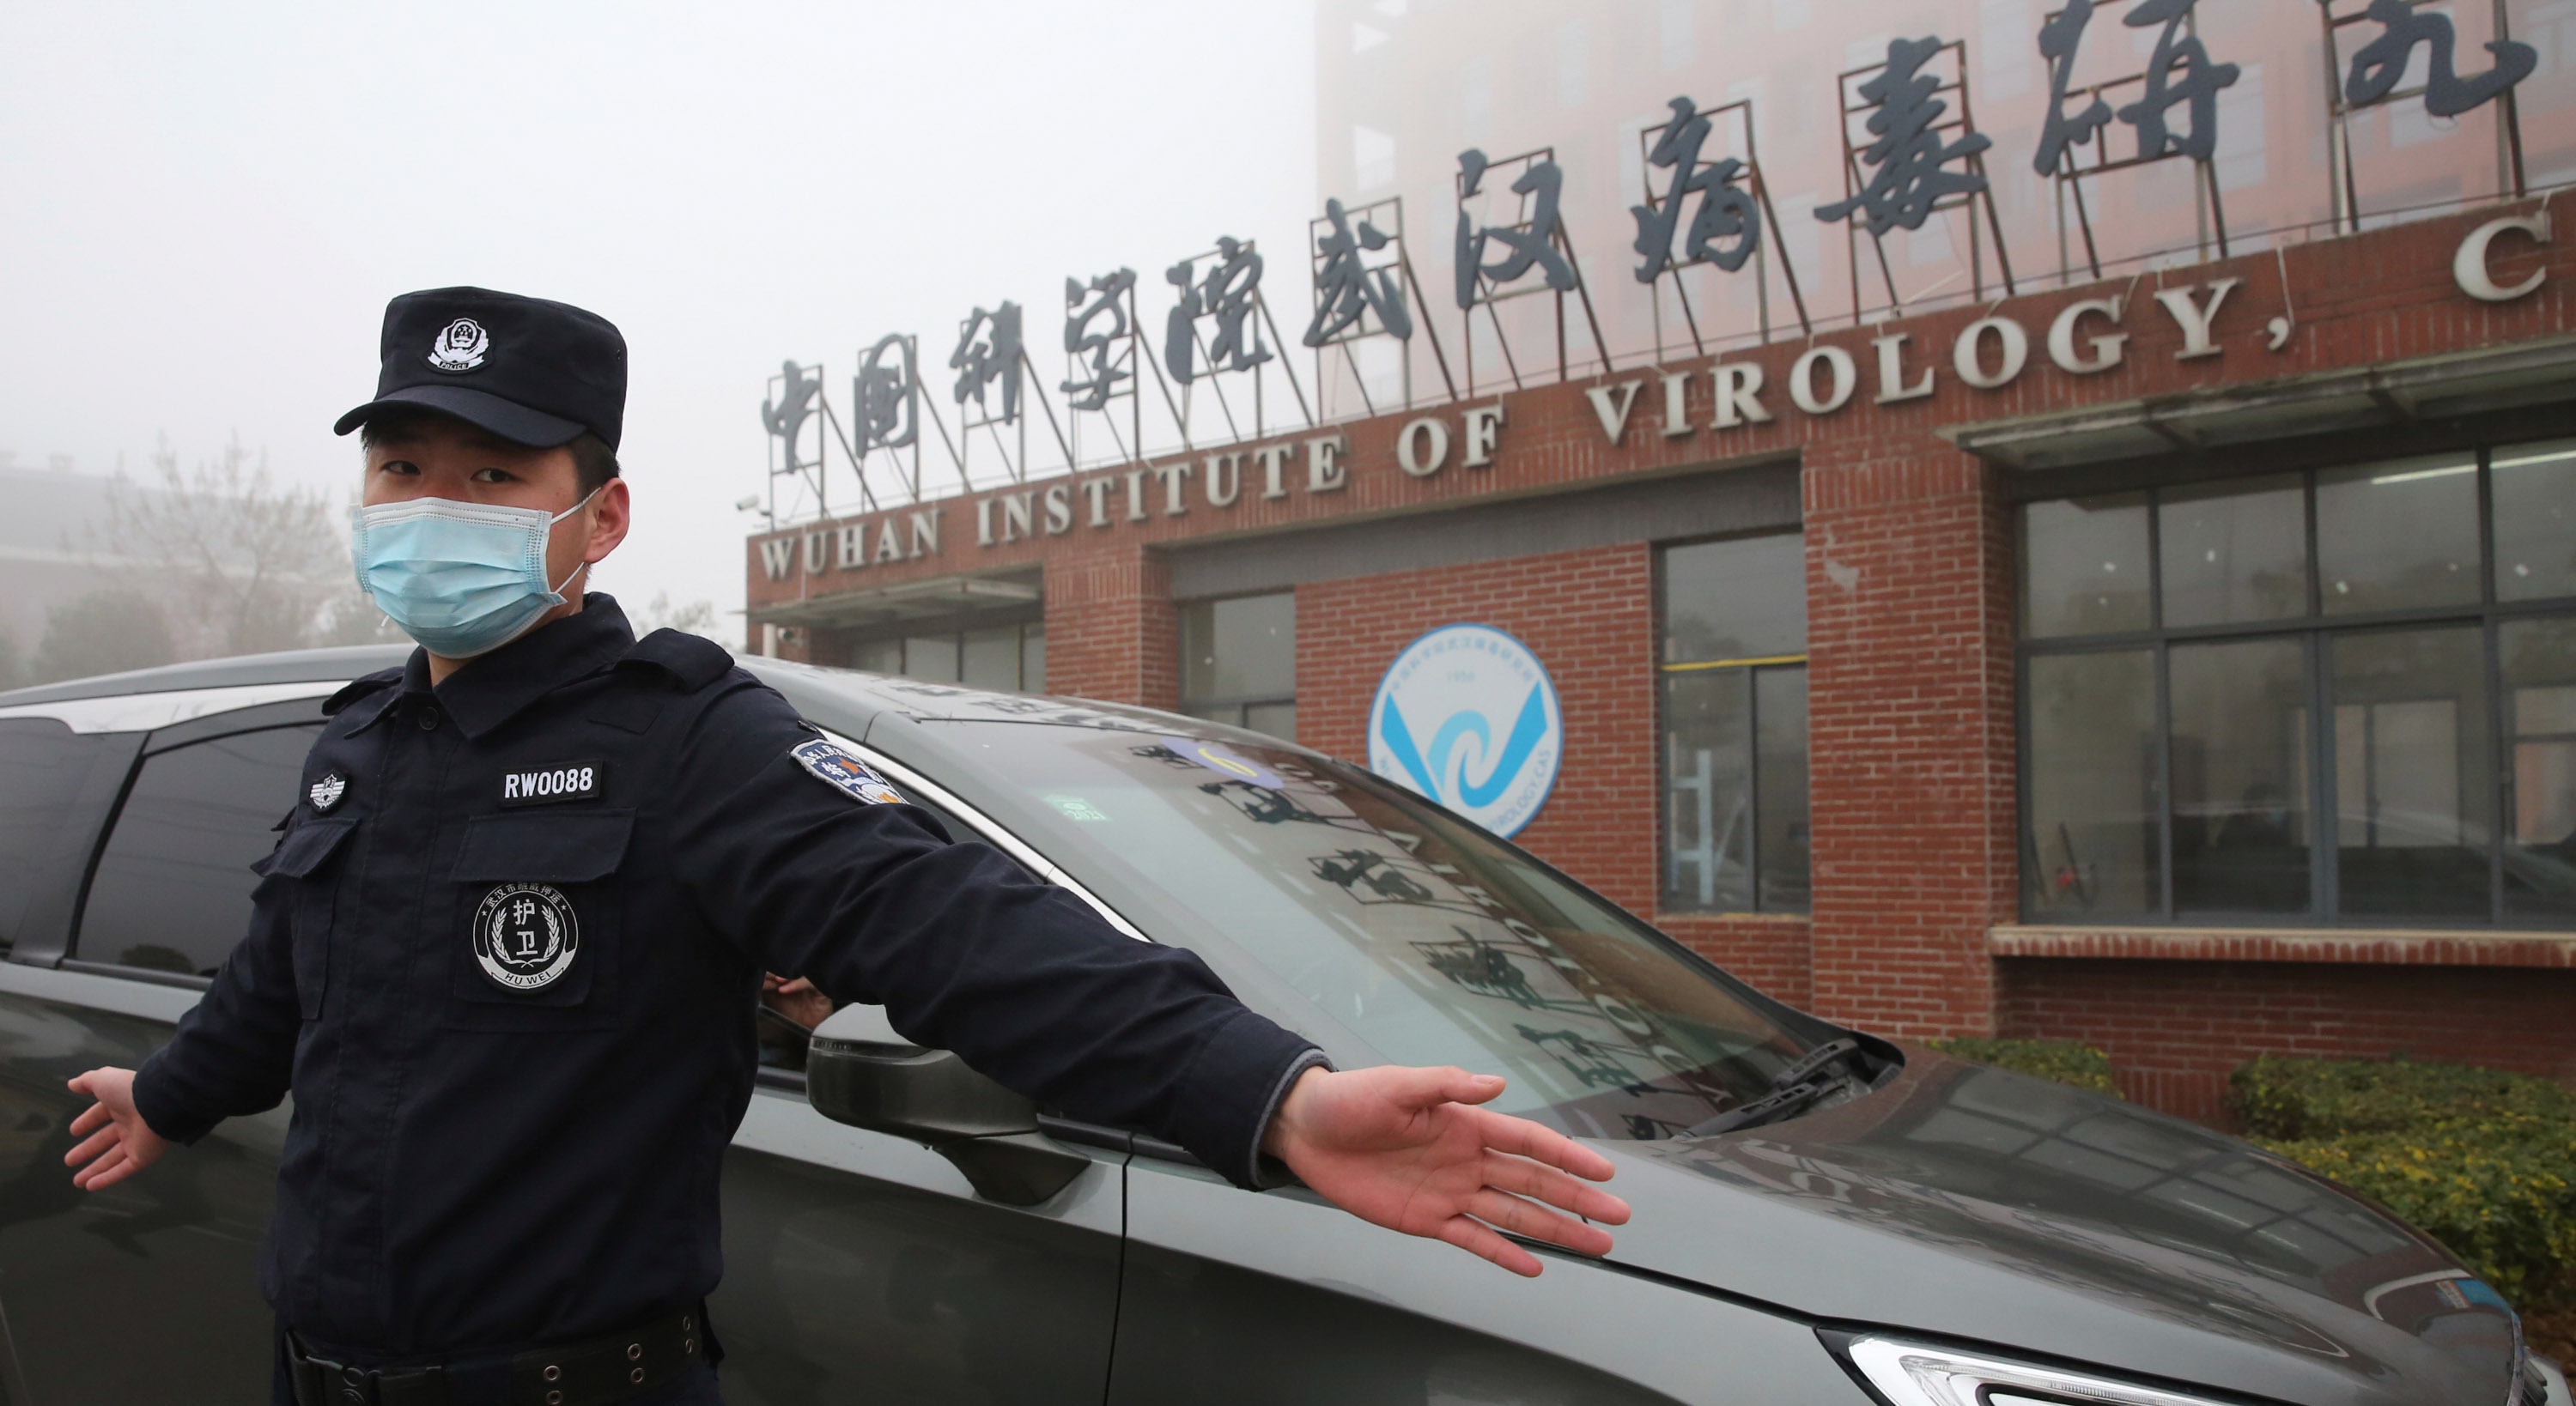 security at Wuhan Institute of Virology